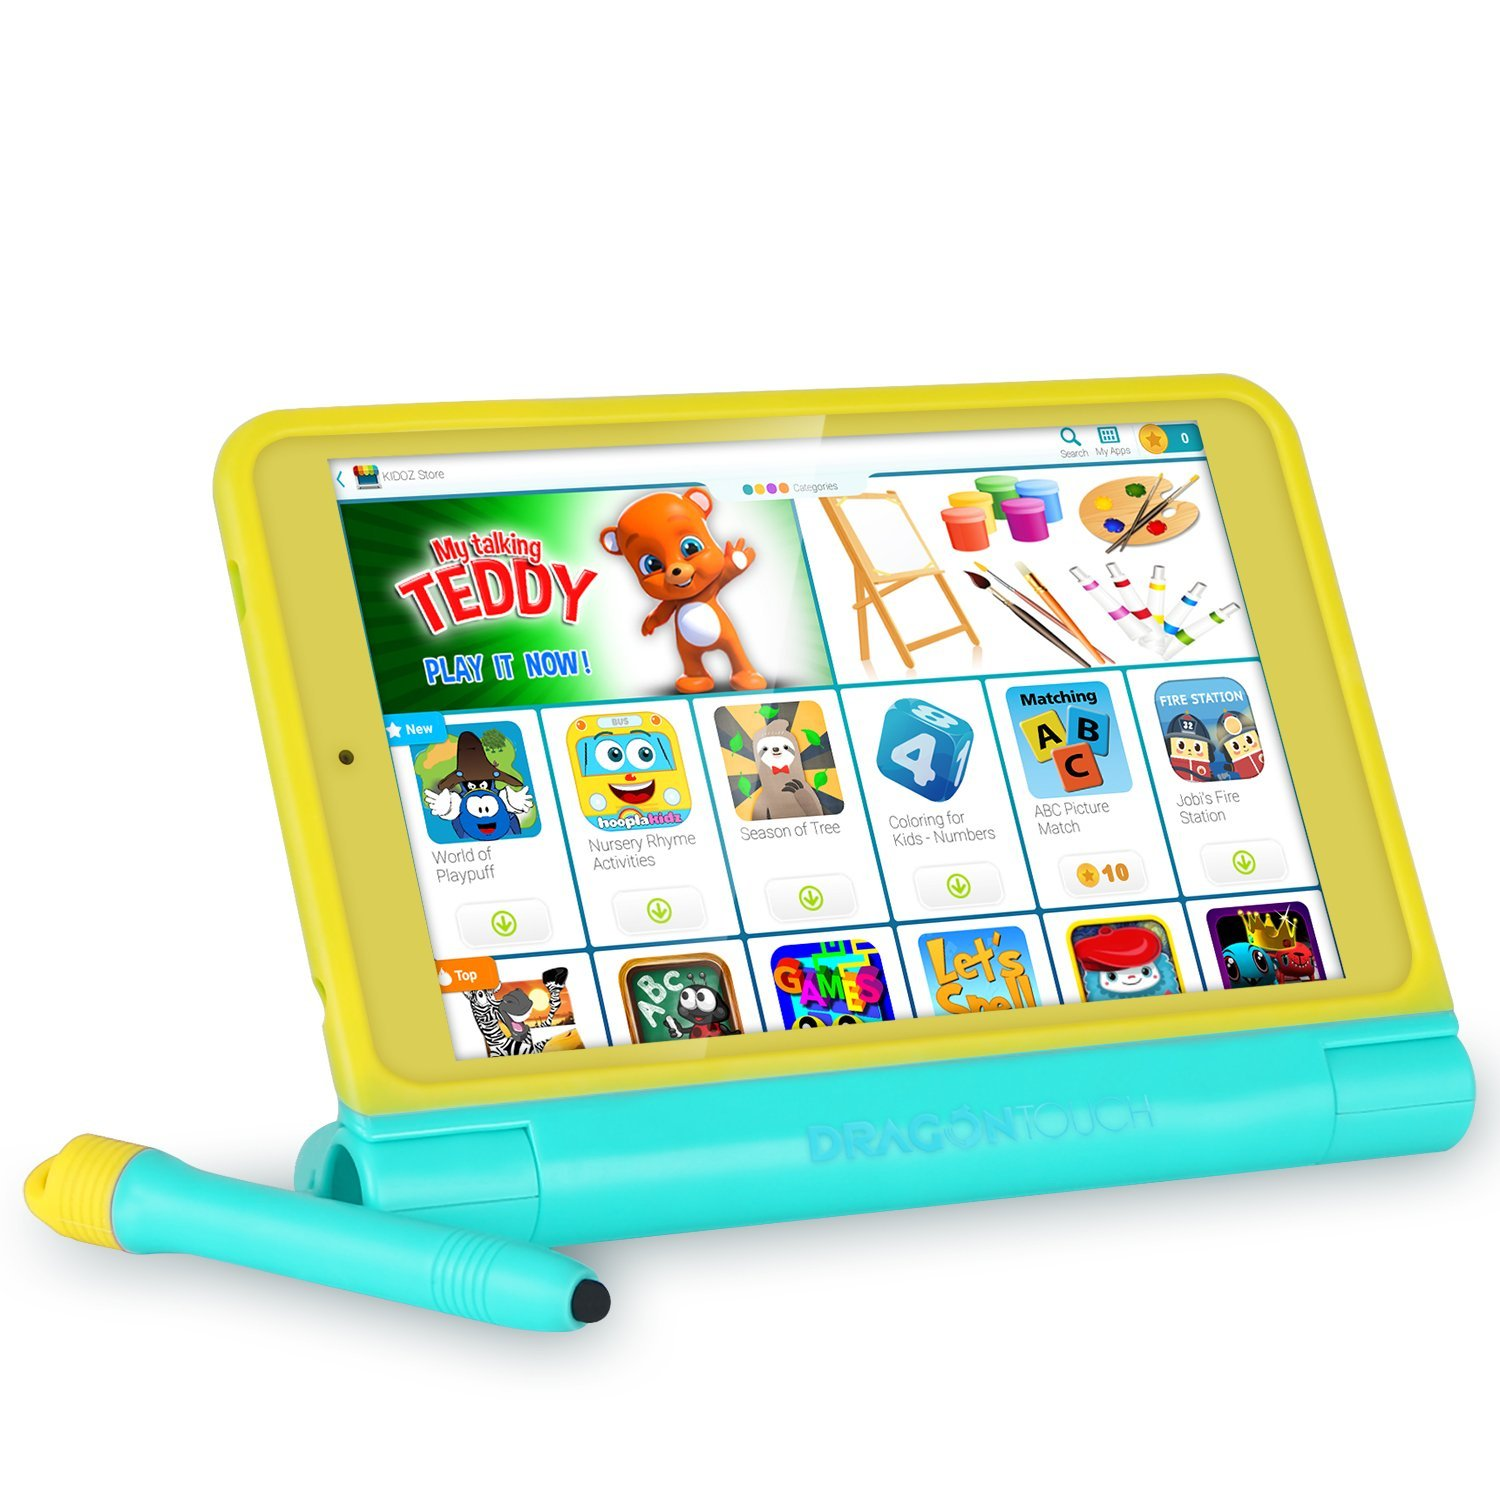 DragonTouch K8 8inch Kids Tablet Kidoz Pre-Installed 2GB RAM 16GB ROM IPS Display Android 6.0 Marshmallow Android Tablet